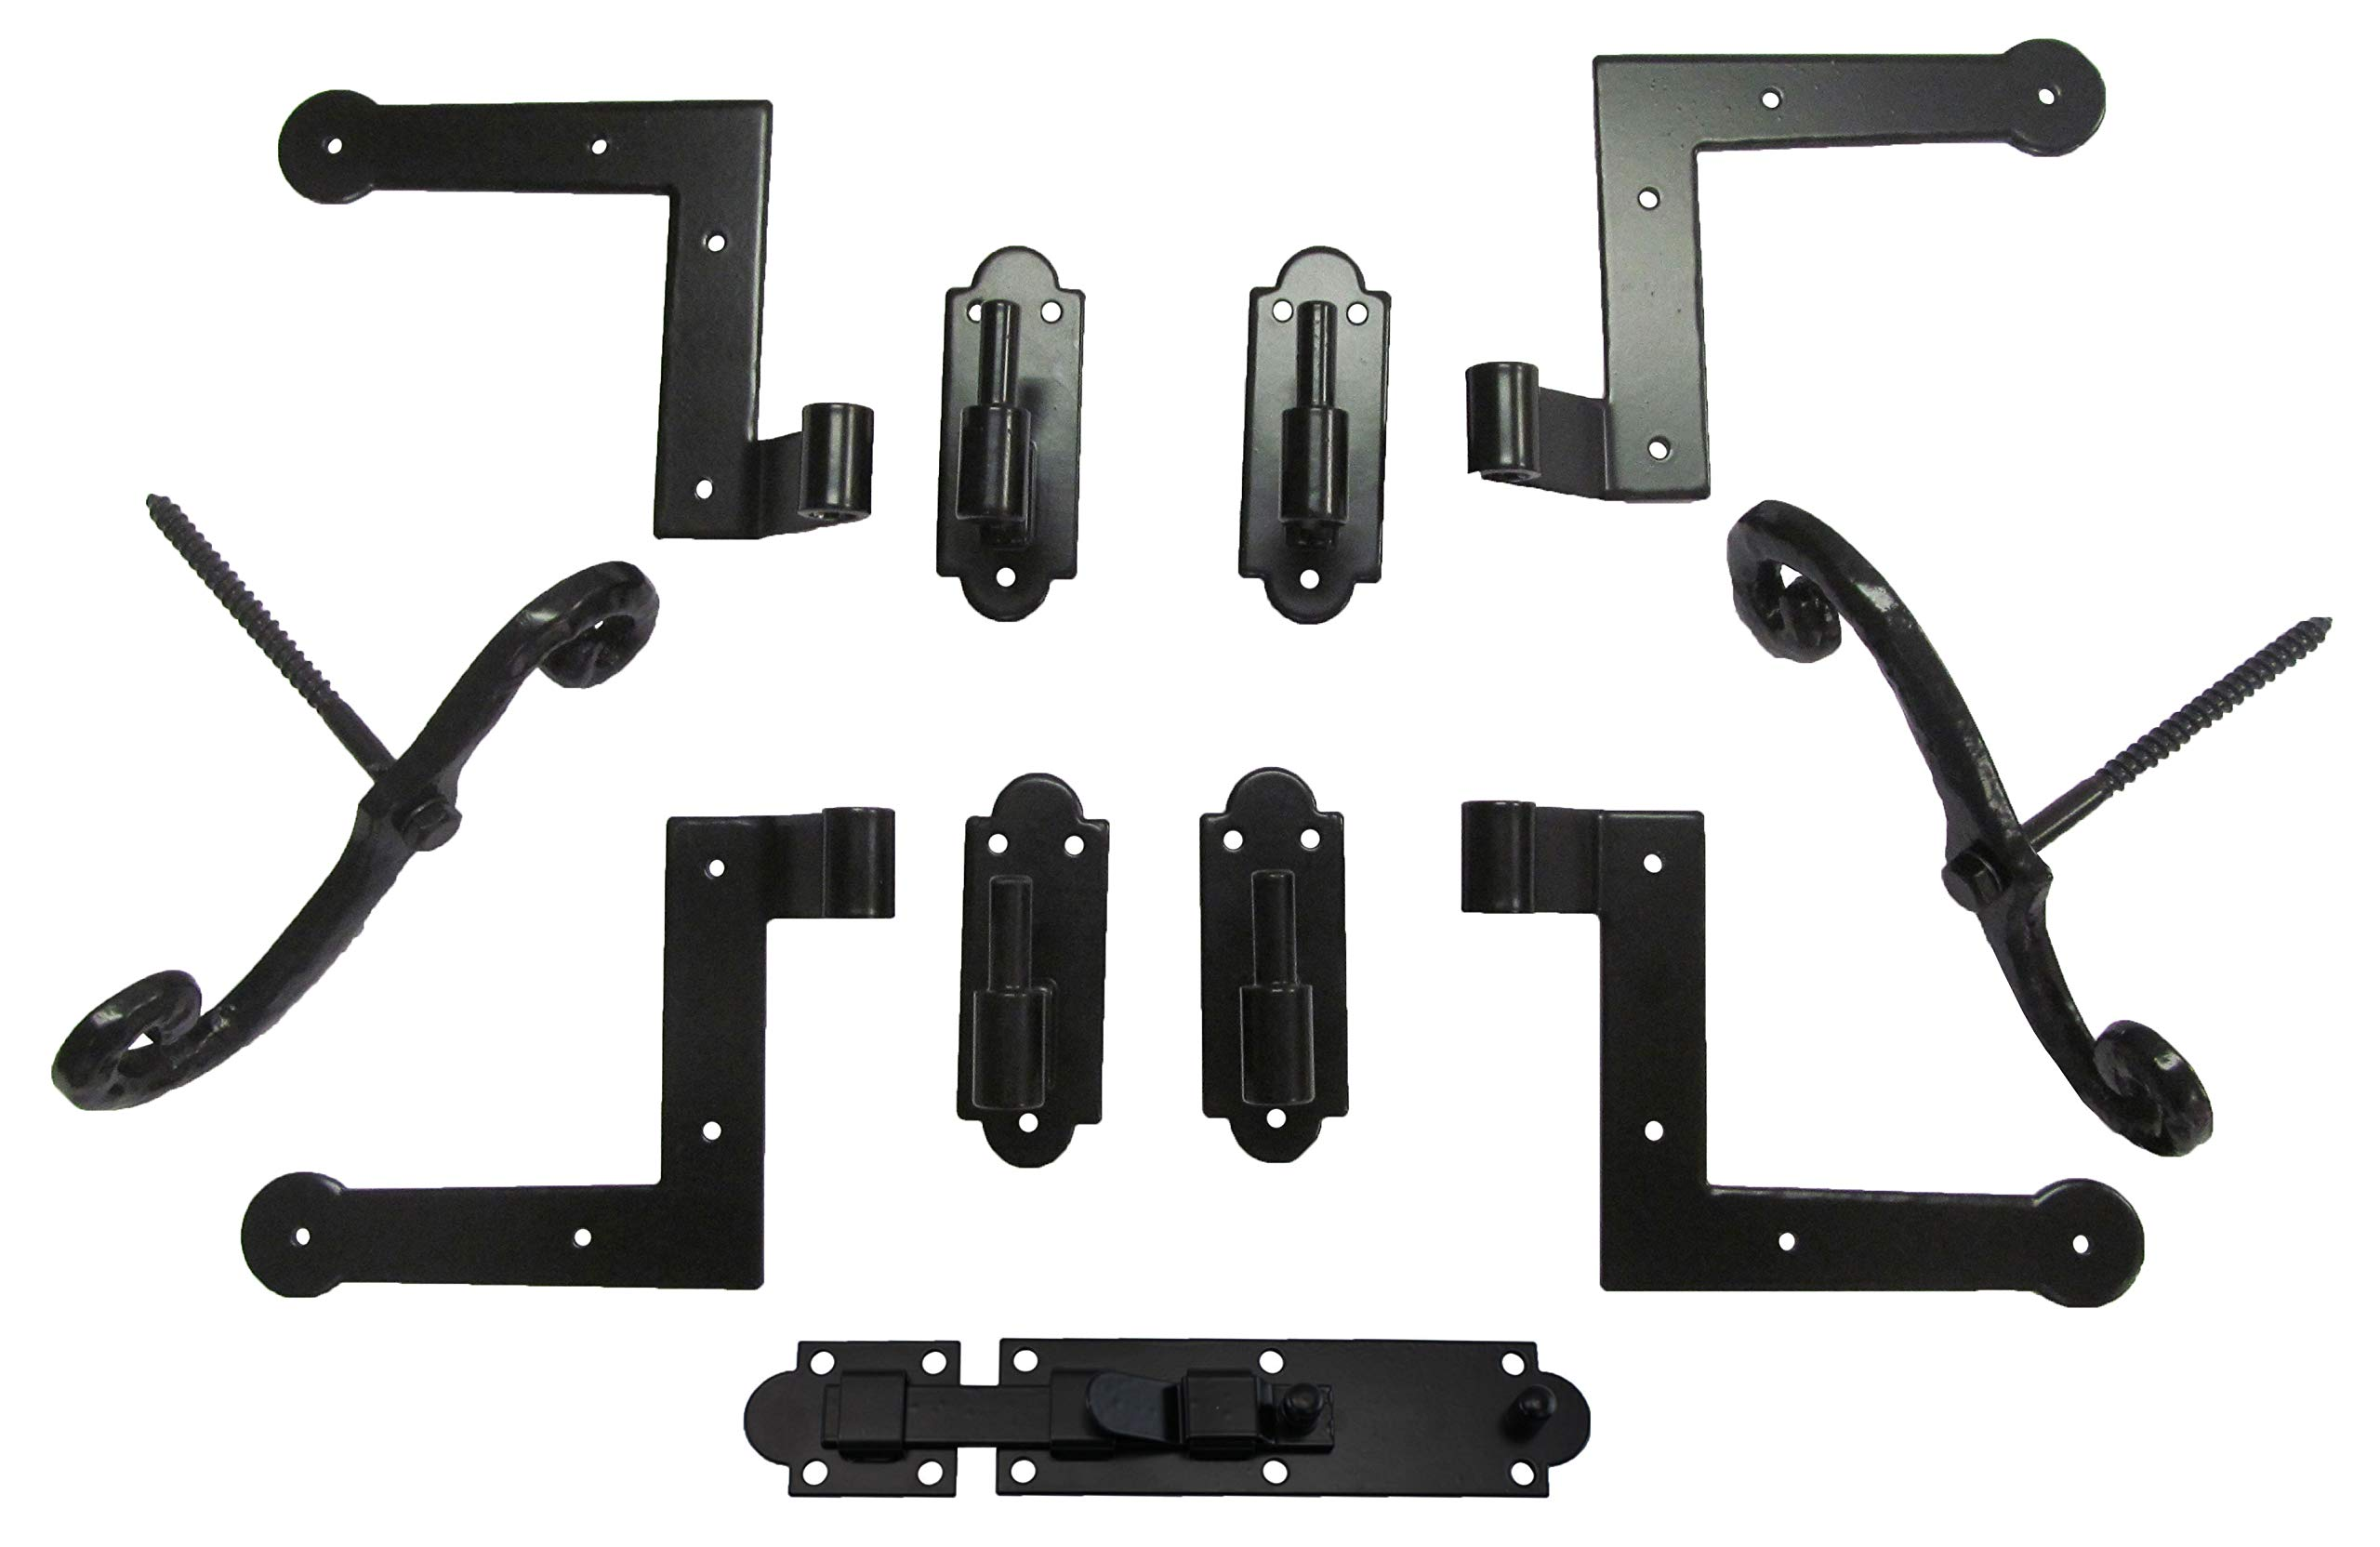 New York Style Shutter Hinge (4) Hardware Set Wood Mount with S/Dogs (2) with Slide Bolt